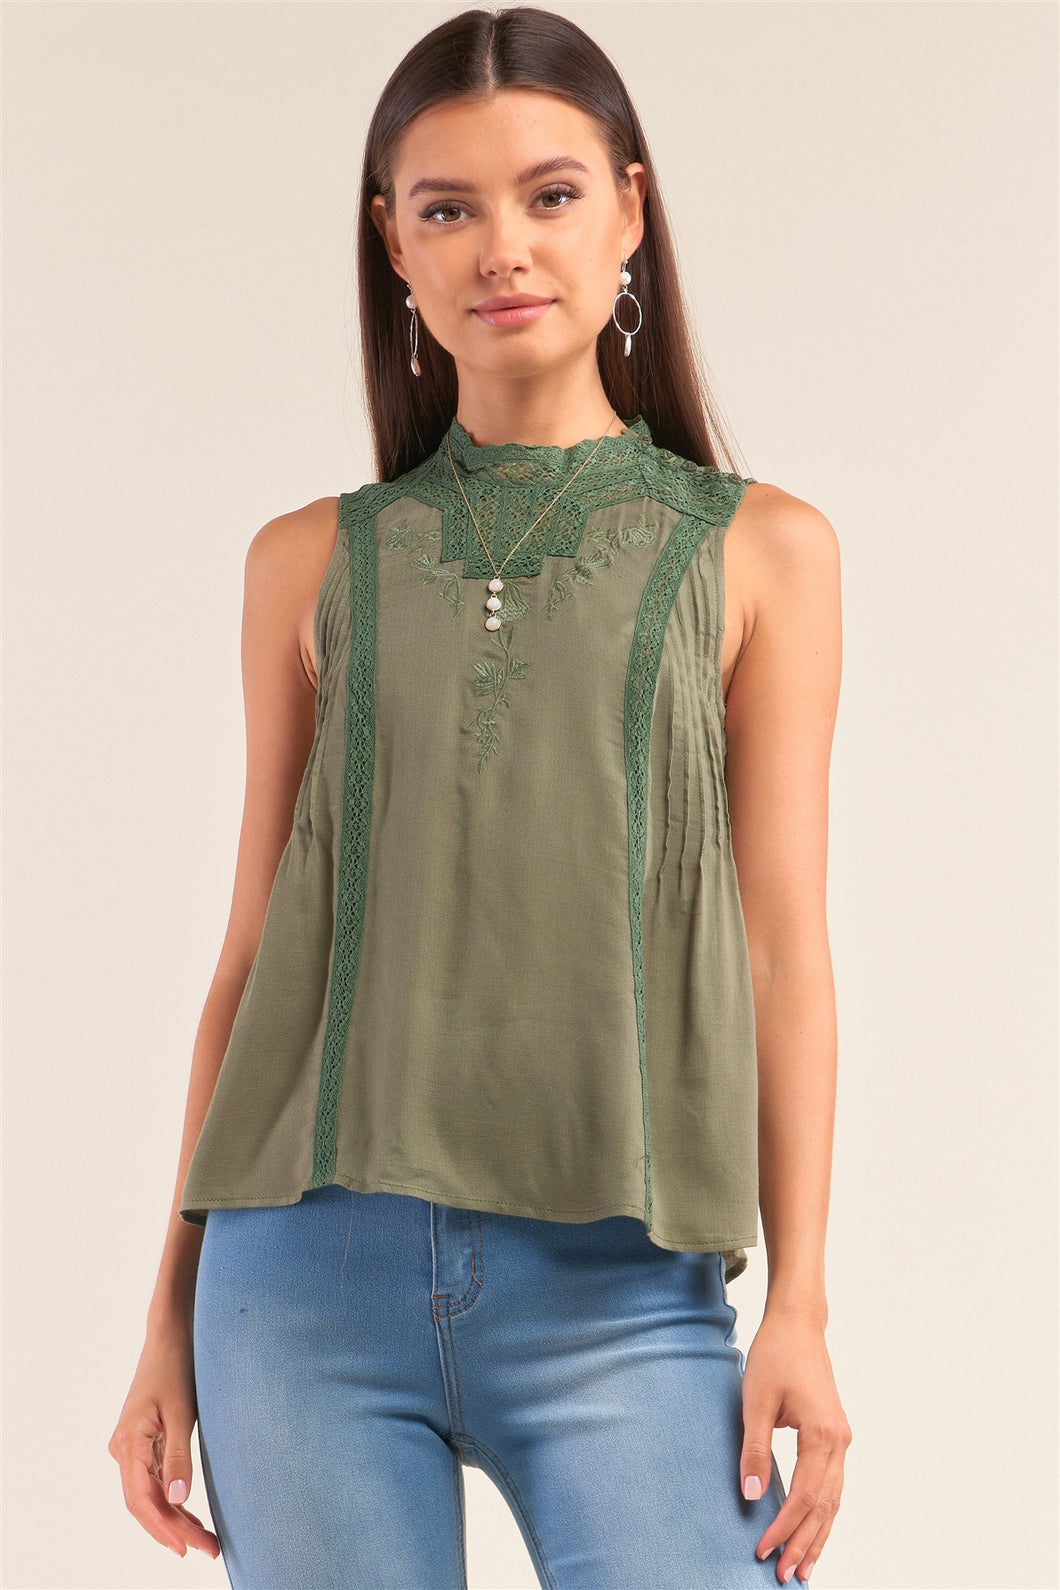 Sleeveless + Forest Green Babydoll Blouse